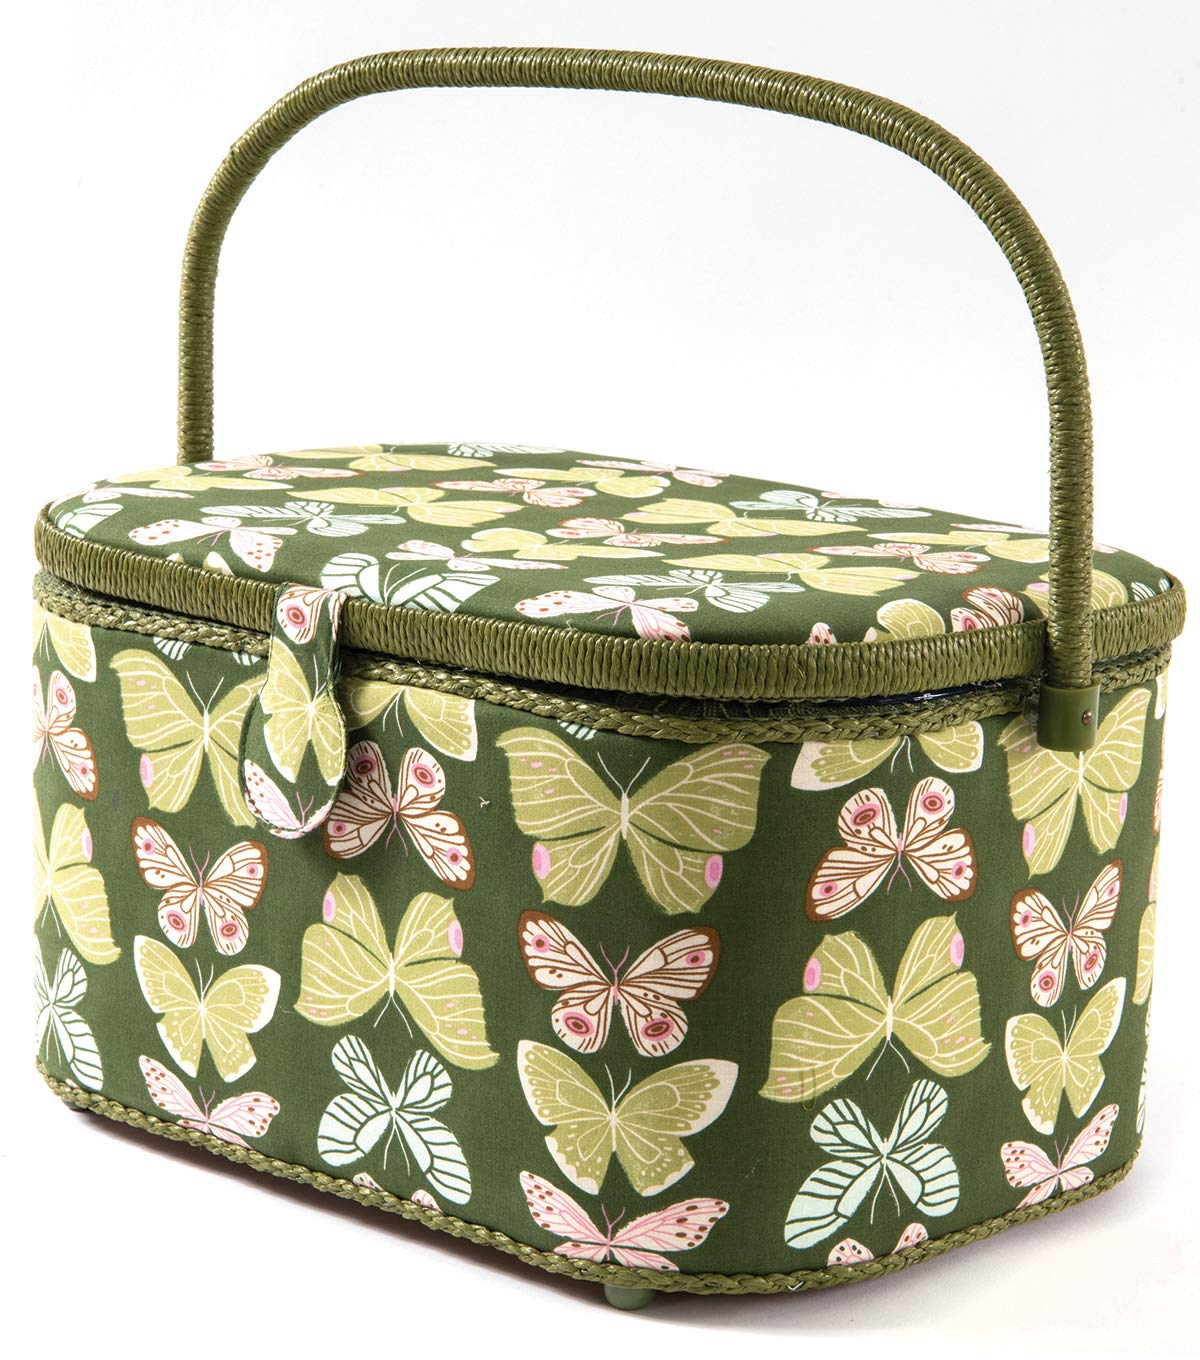 Dritz St Jane Extra Large Oval Sewing Basket Box Dritz Sewing Supplies Organization Storage (Extra Large 15''x10''x7.5, Green Butterflies) by St Jane